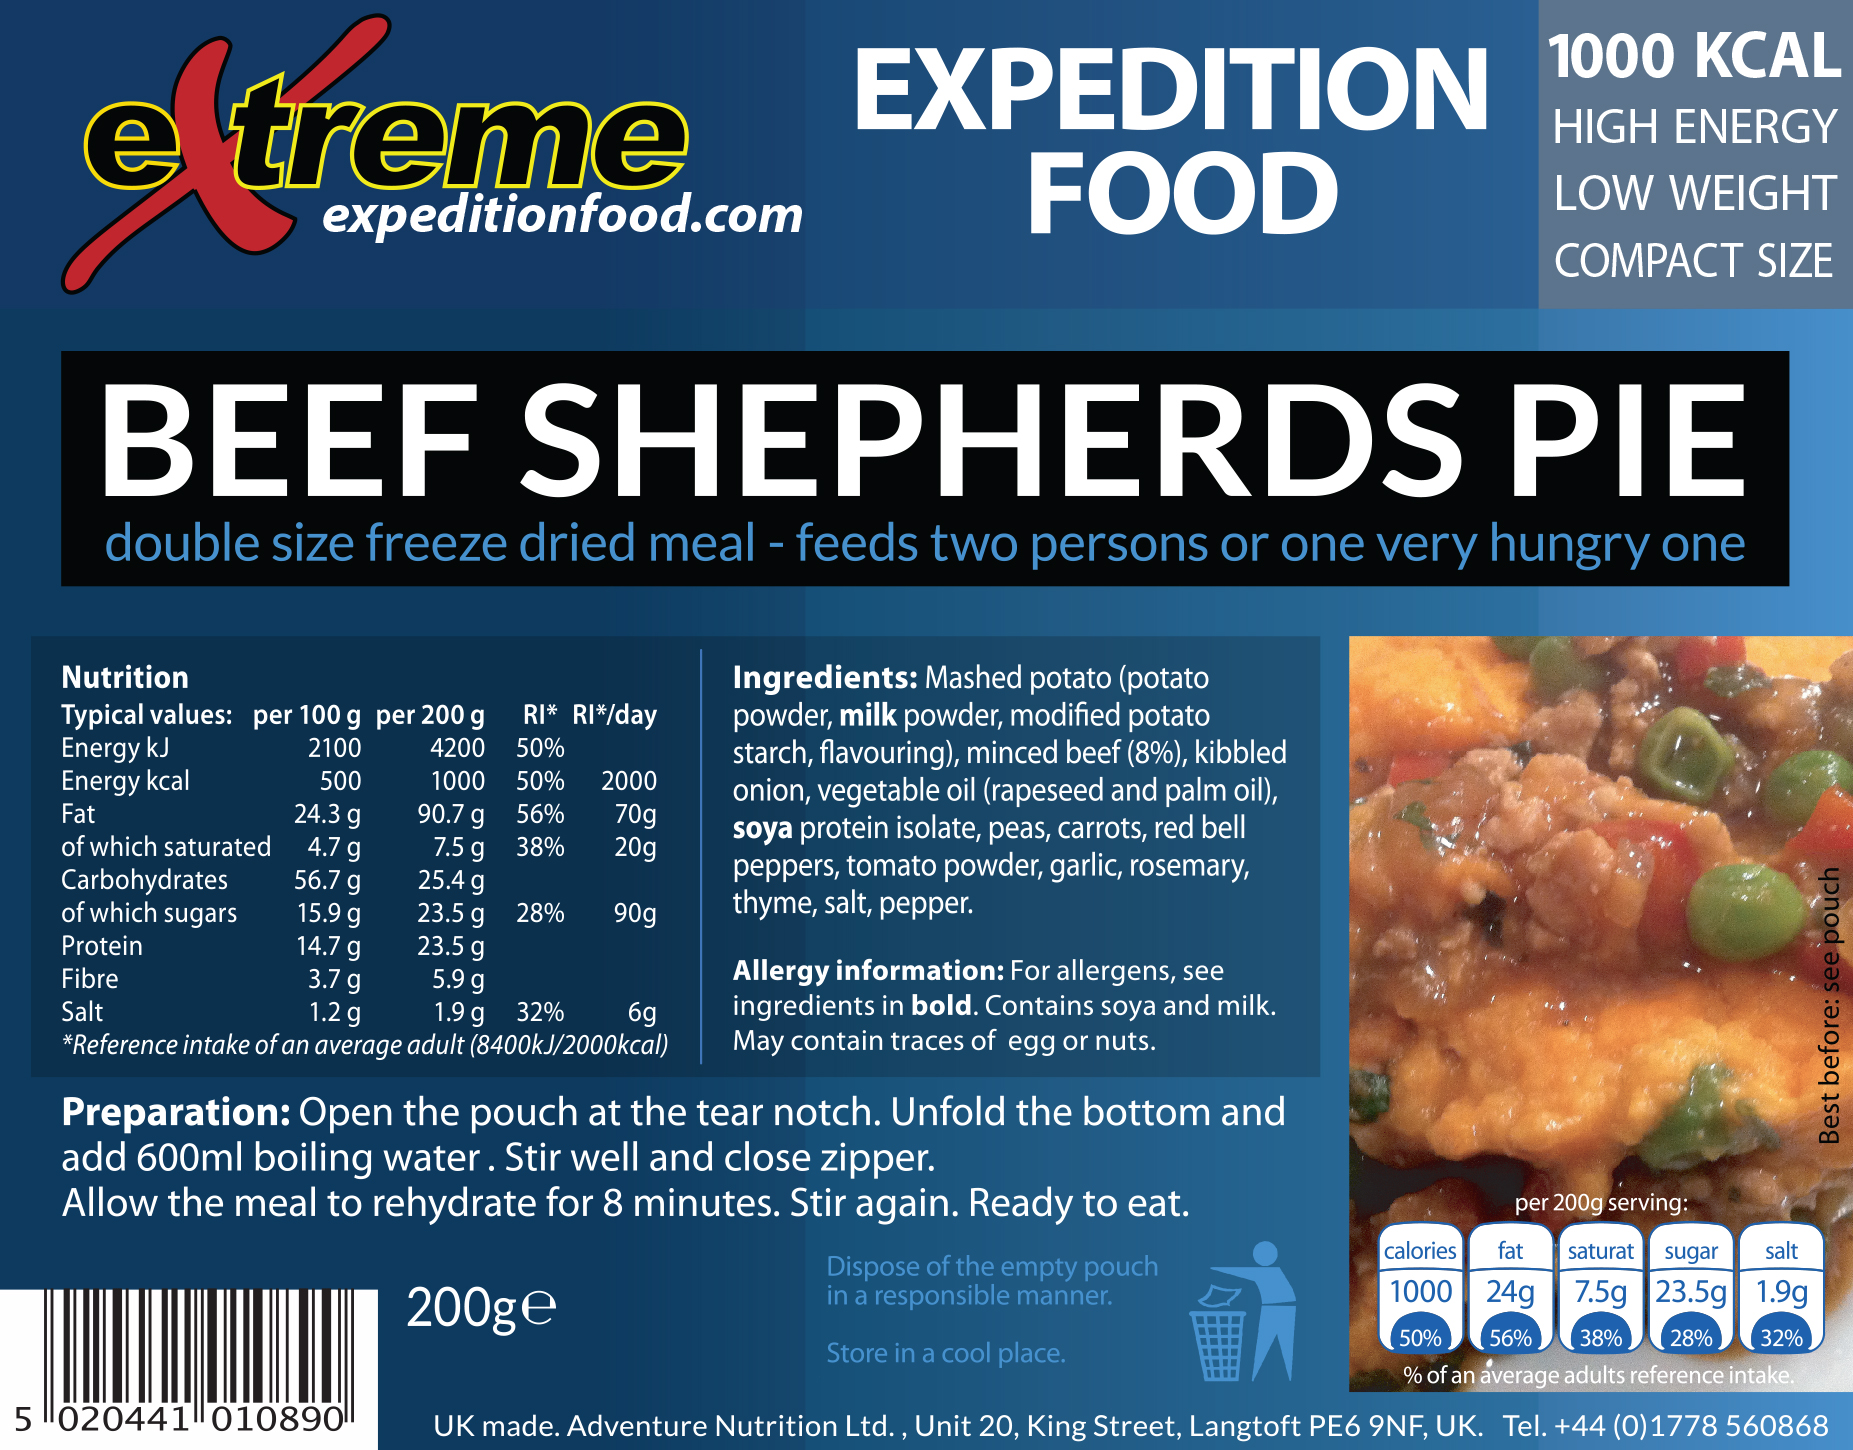 Extreme expedition Food 1000 Kcal Beef Shepherds pie